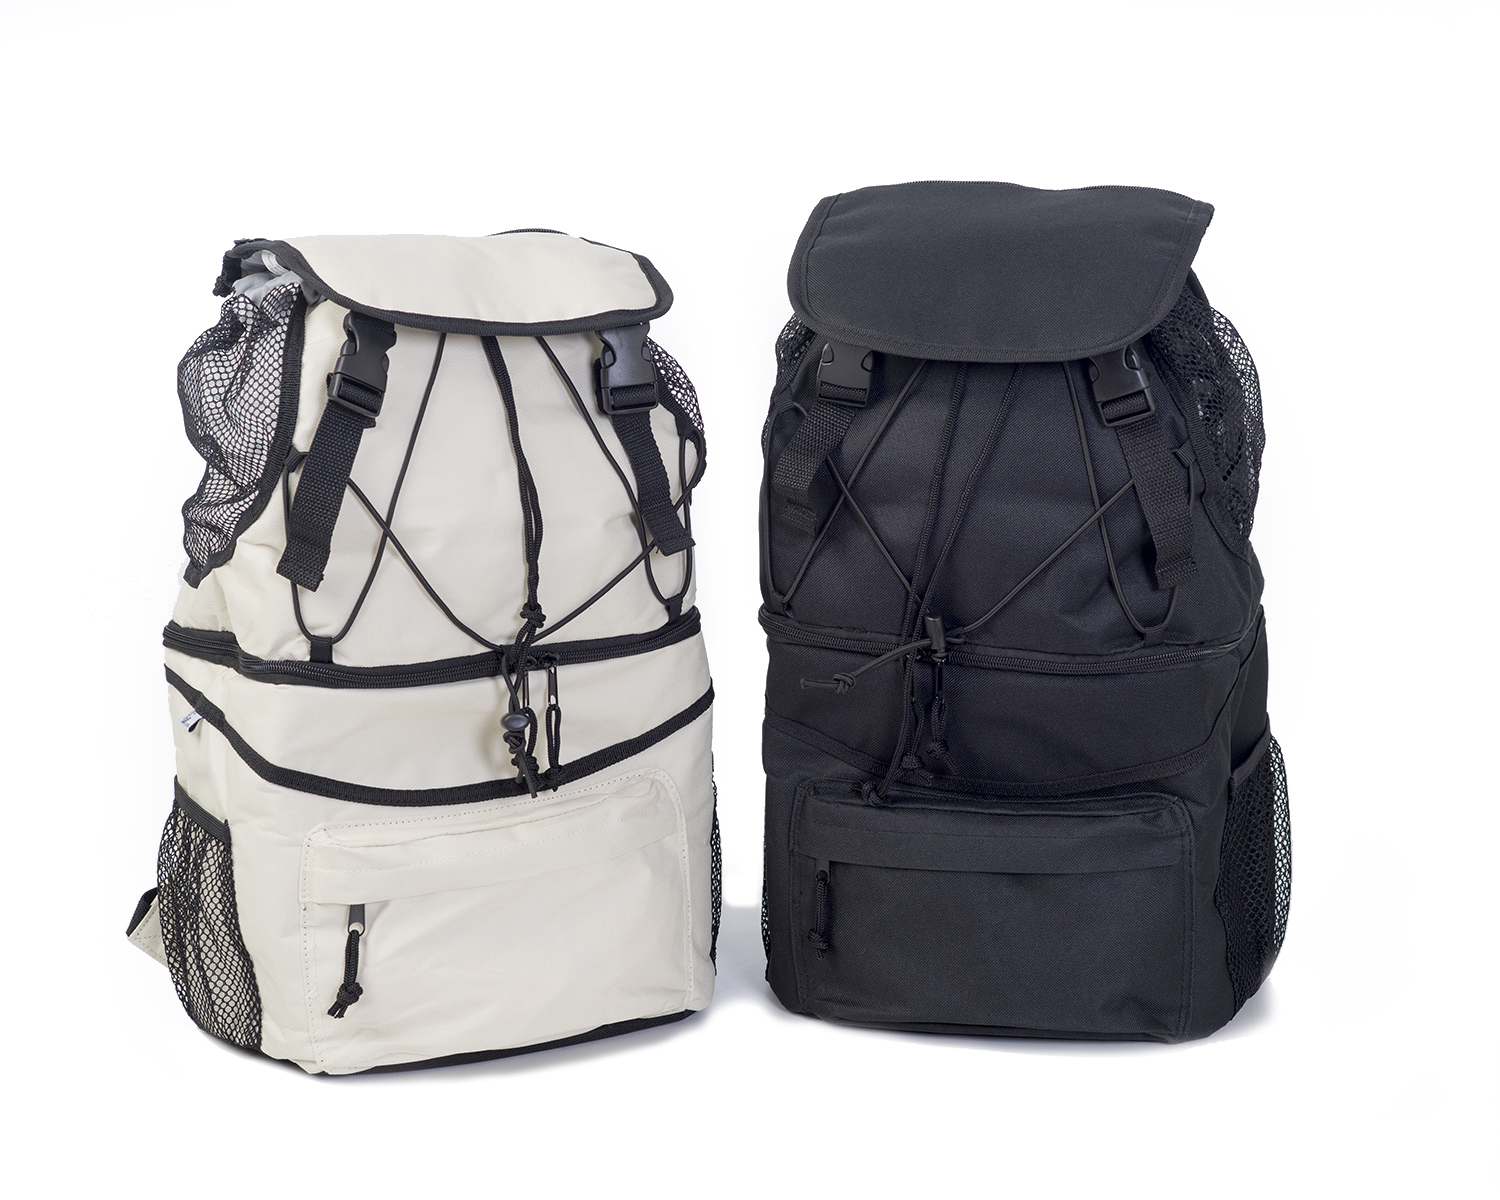 Burnett backpacks 0019